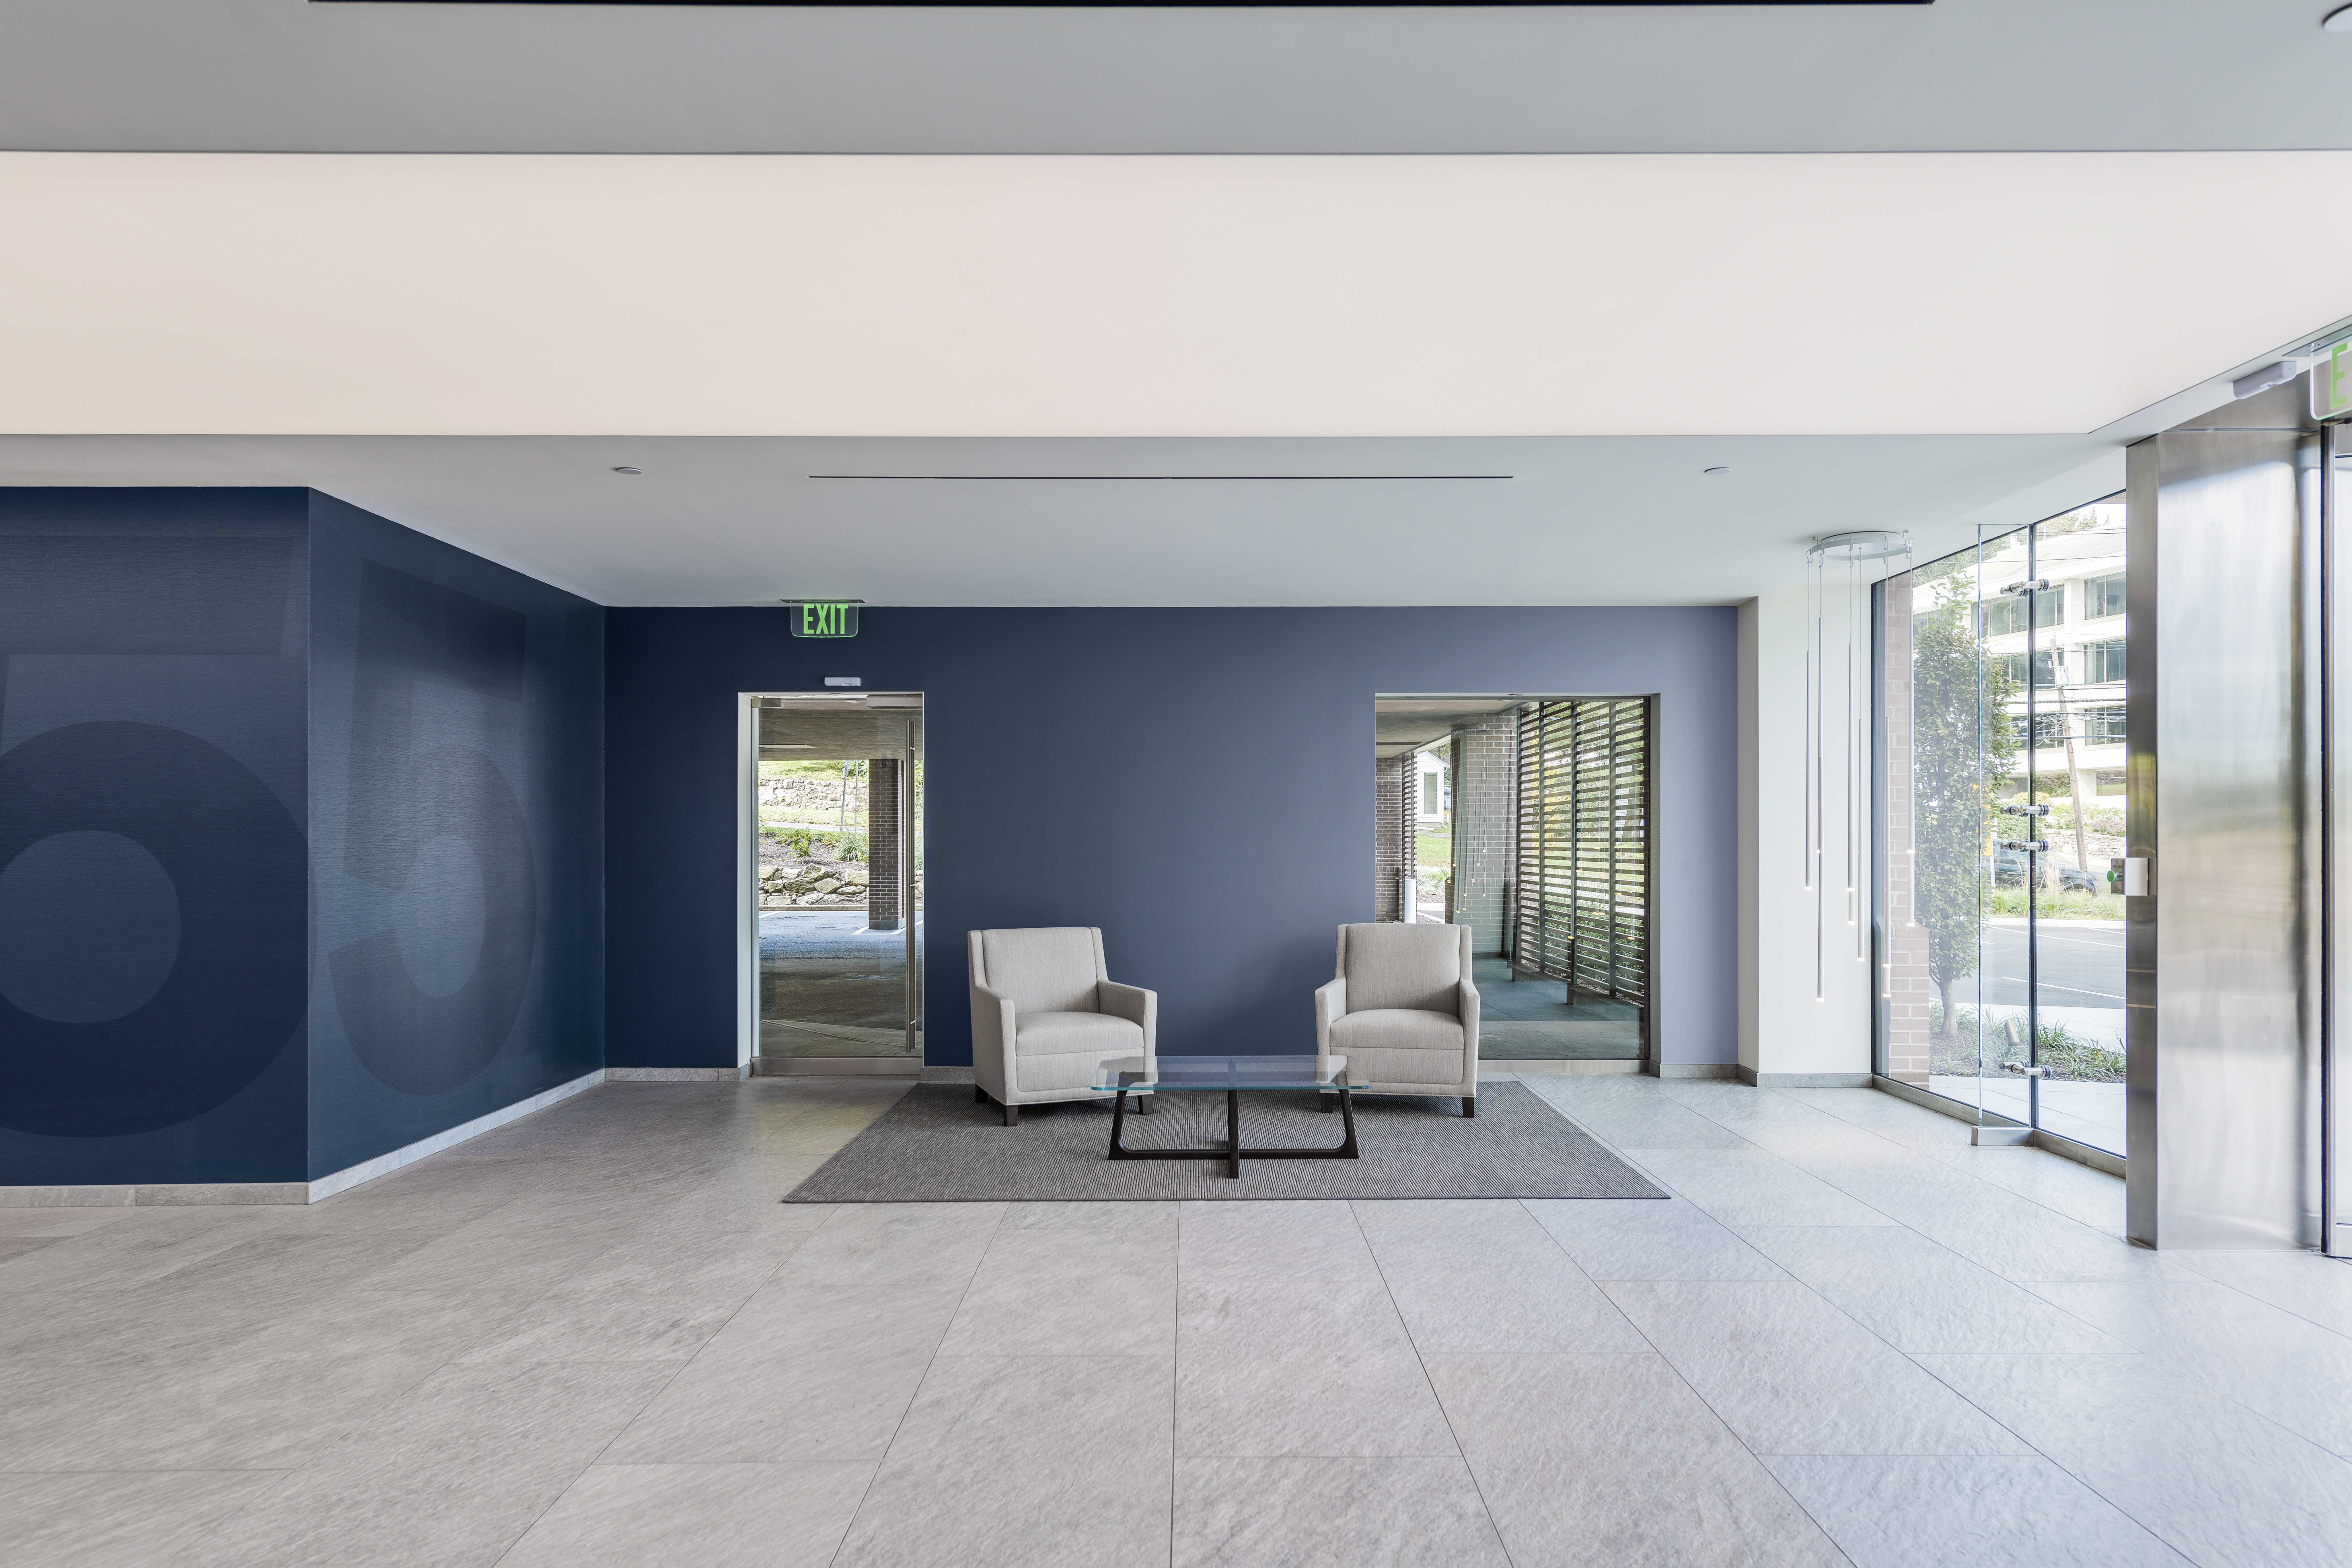 55 Post Road West lobby